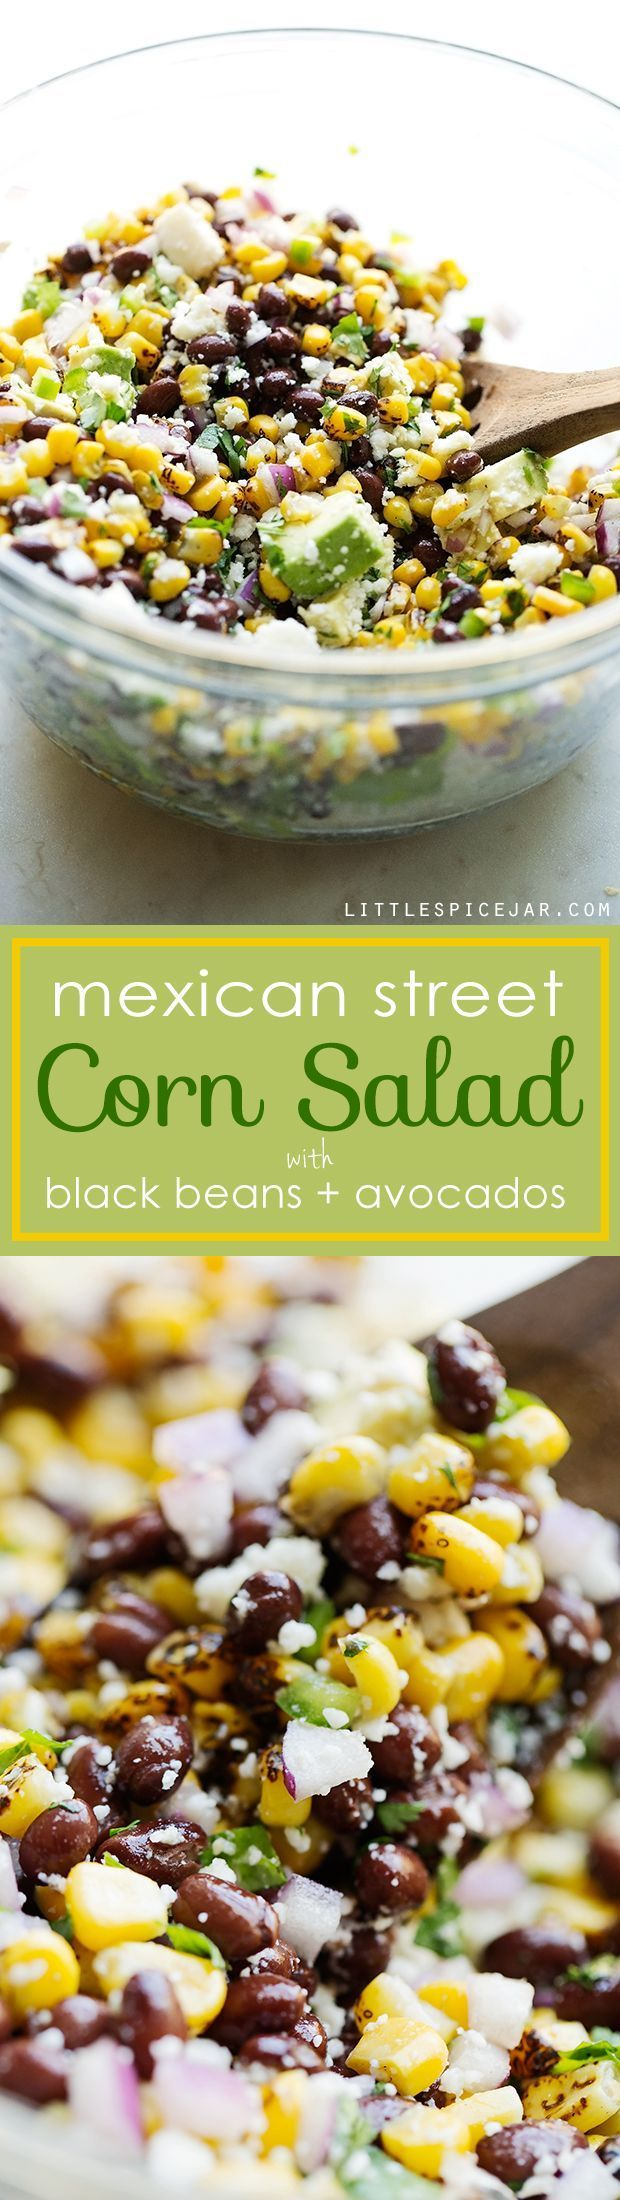 Mexican Street Corn Salad - The perfect summer corn salad with lots of fresh ingredients tossed in a light homemade dressing! #vegetarian #cornsalad #mexicanstreetcorn #streetcornsalad | http://Littlespicejar.com